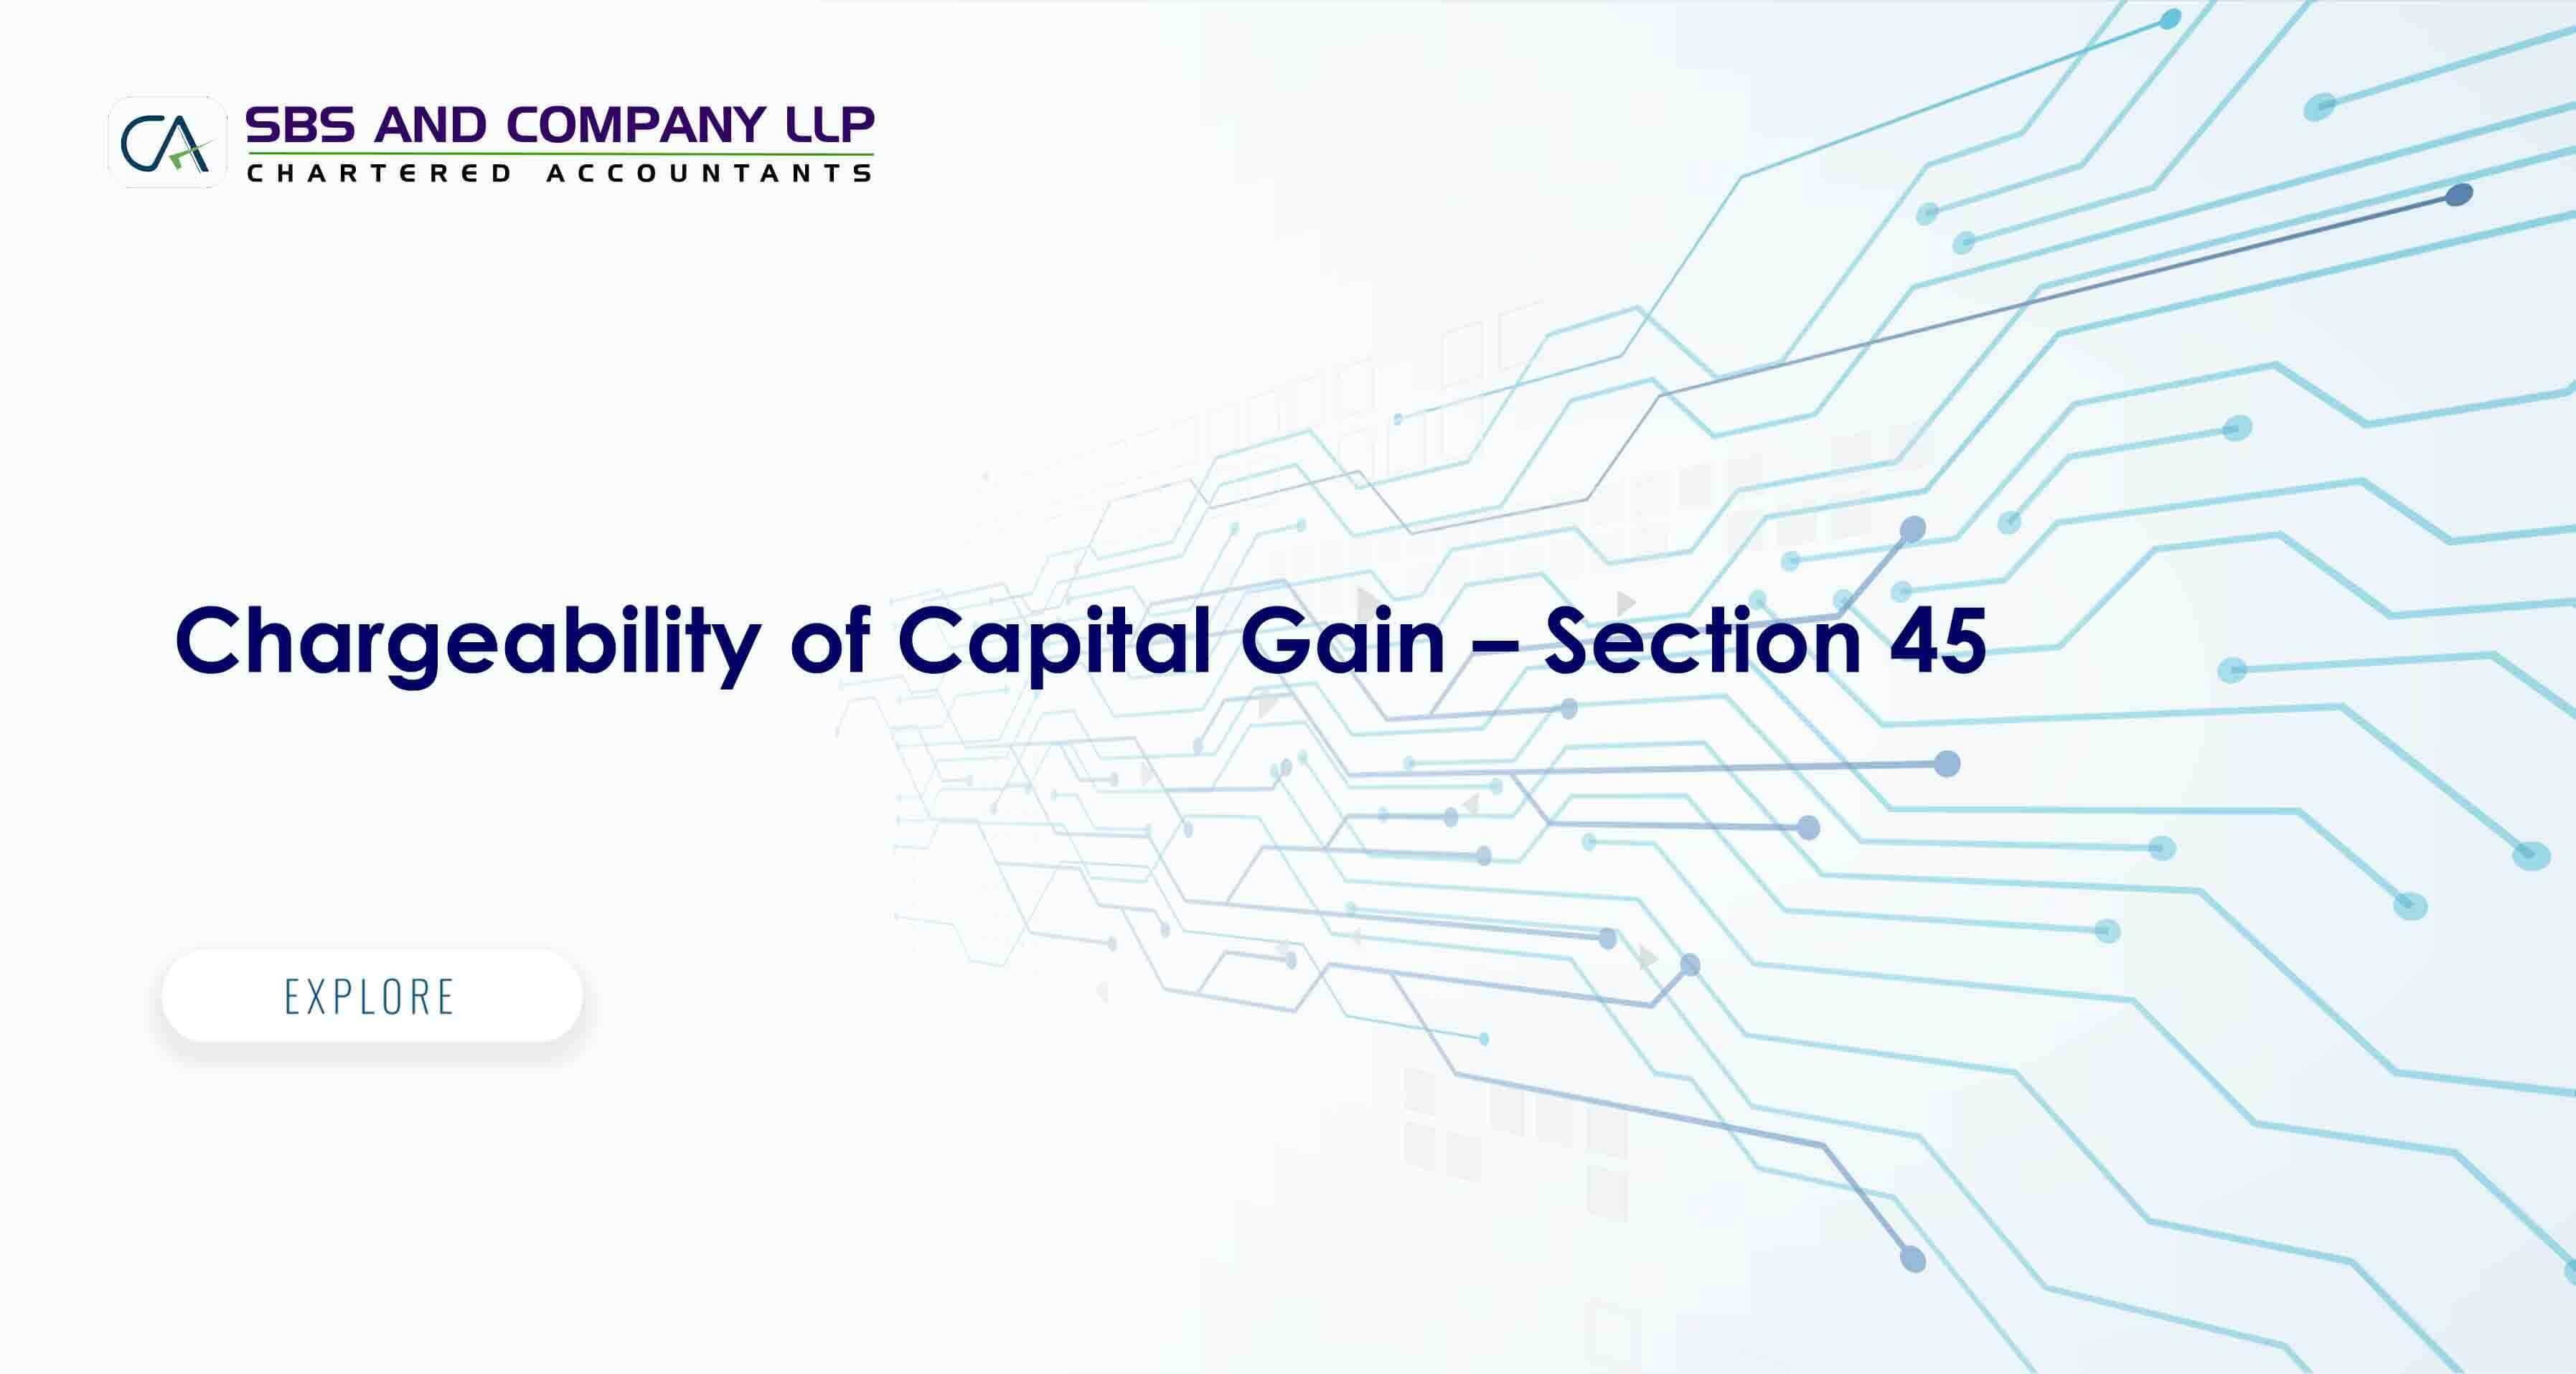 Chargeability of Capital Gain – Section 45